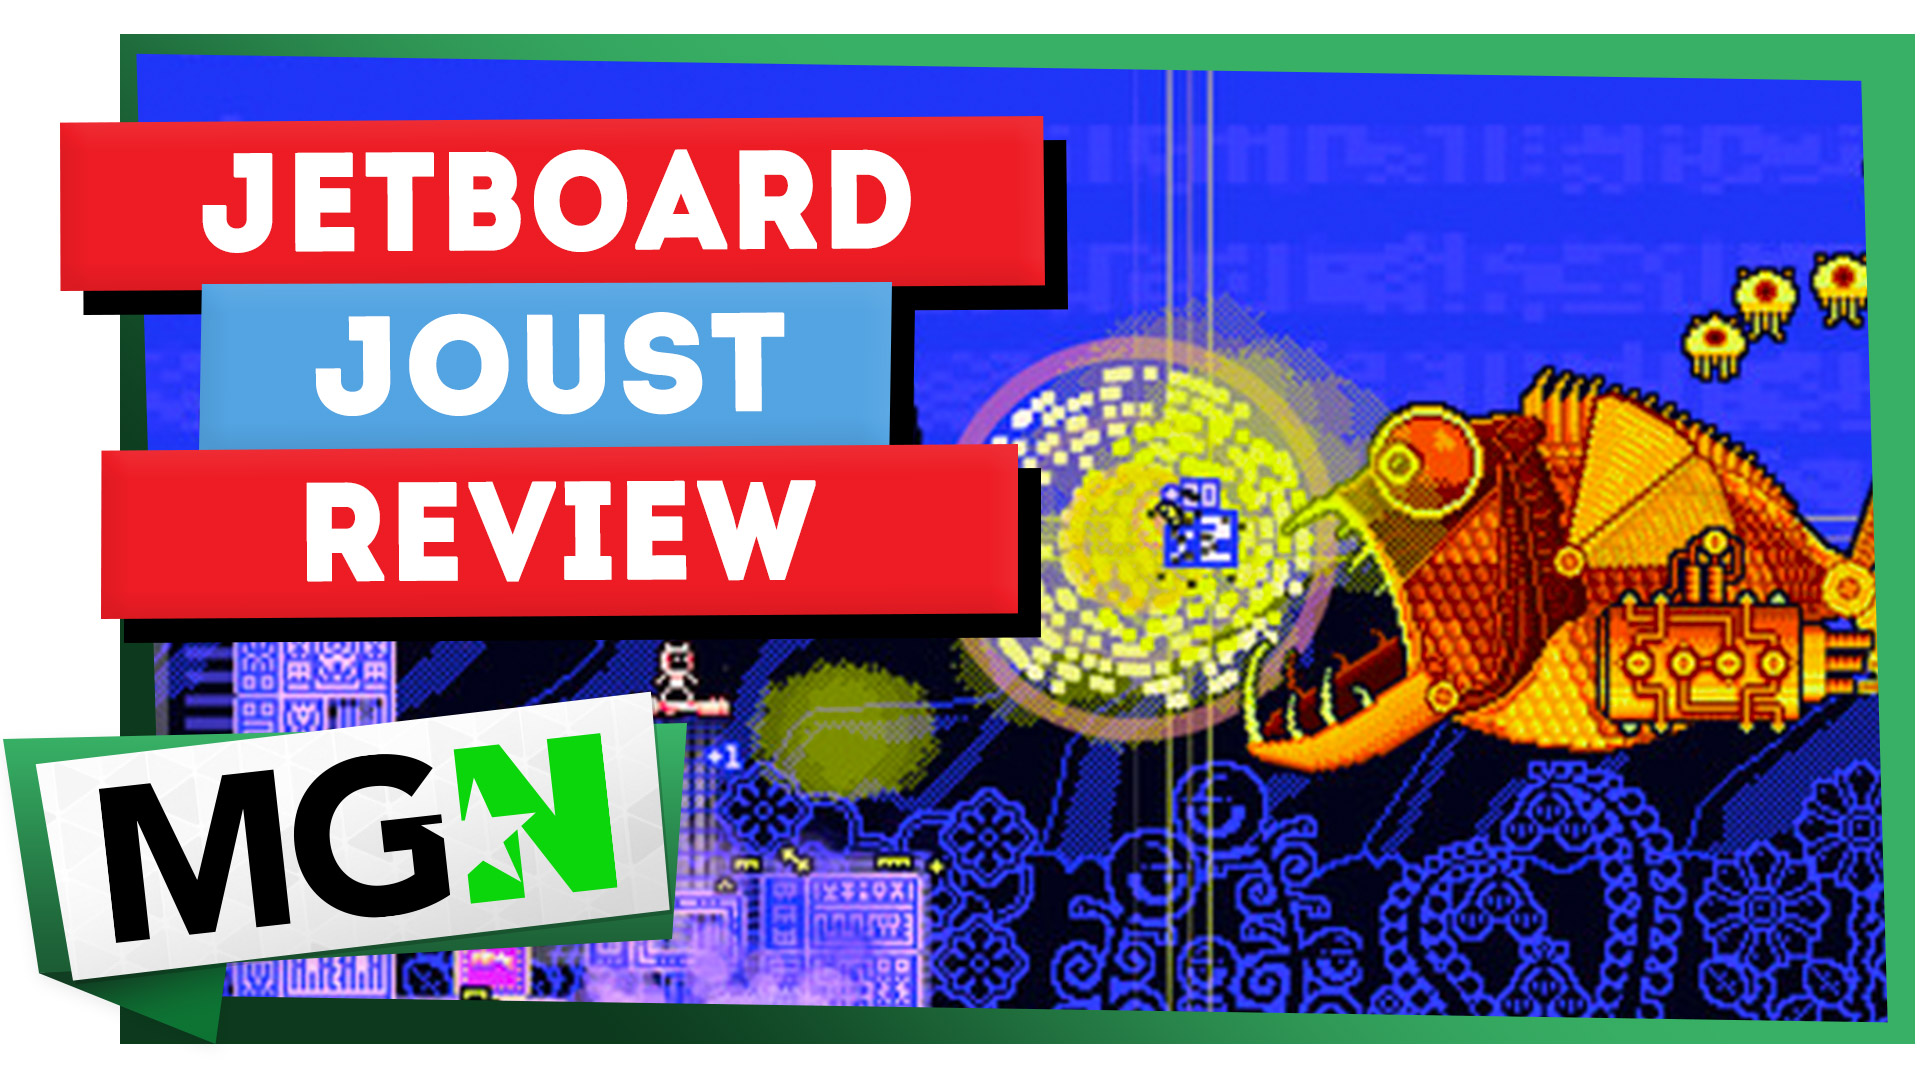 Jetboard Joust Review